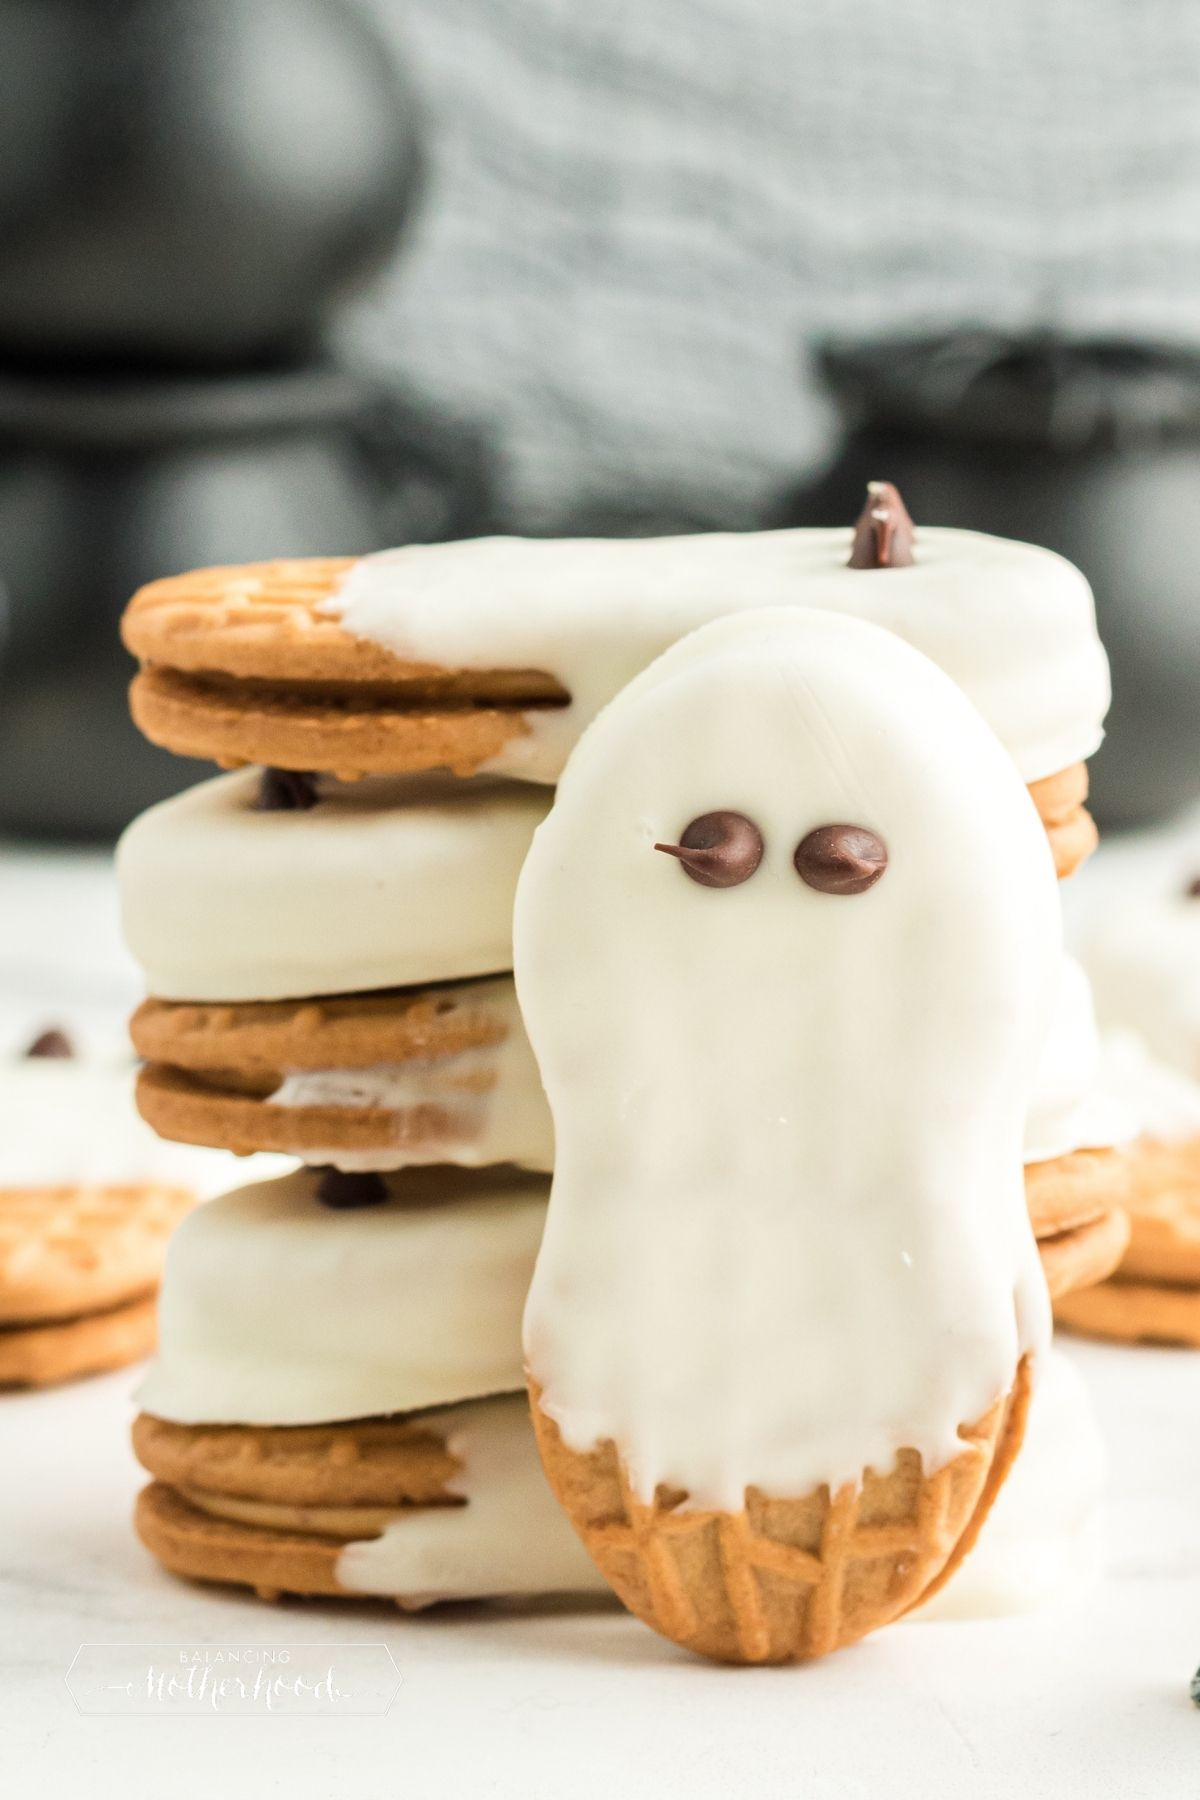 white chocolate covered Nutter Butter cookies stacked, one standing on end with chocolate eyes